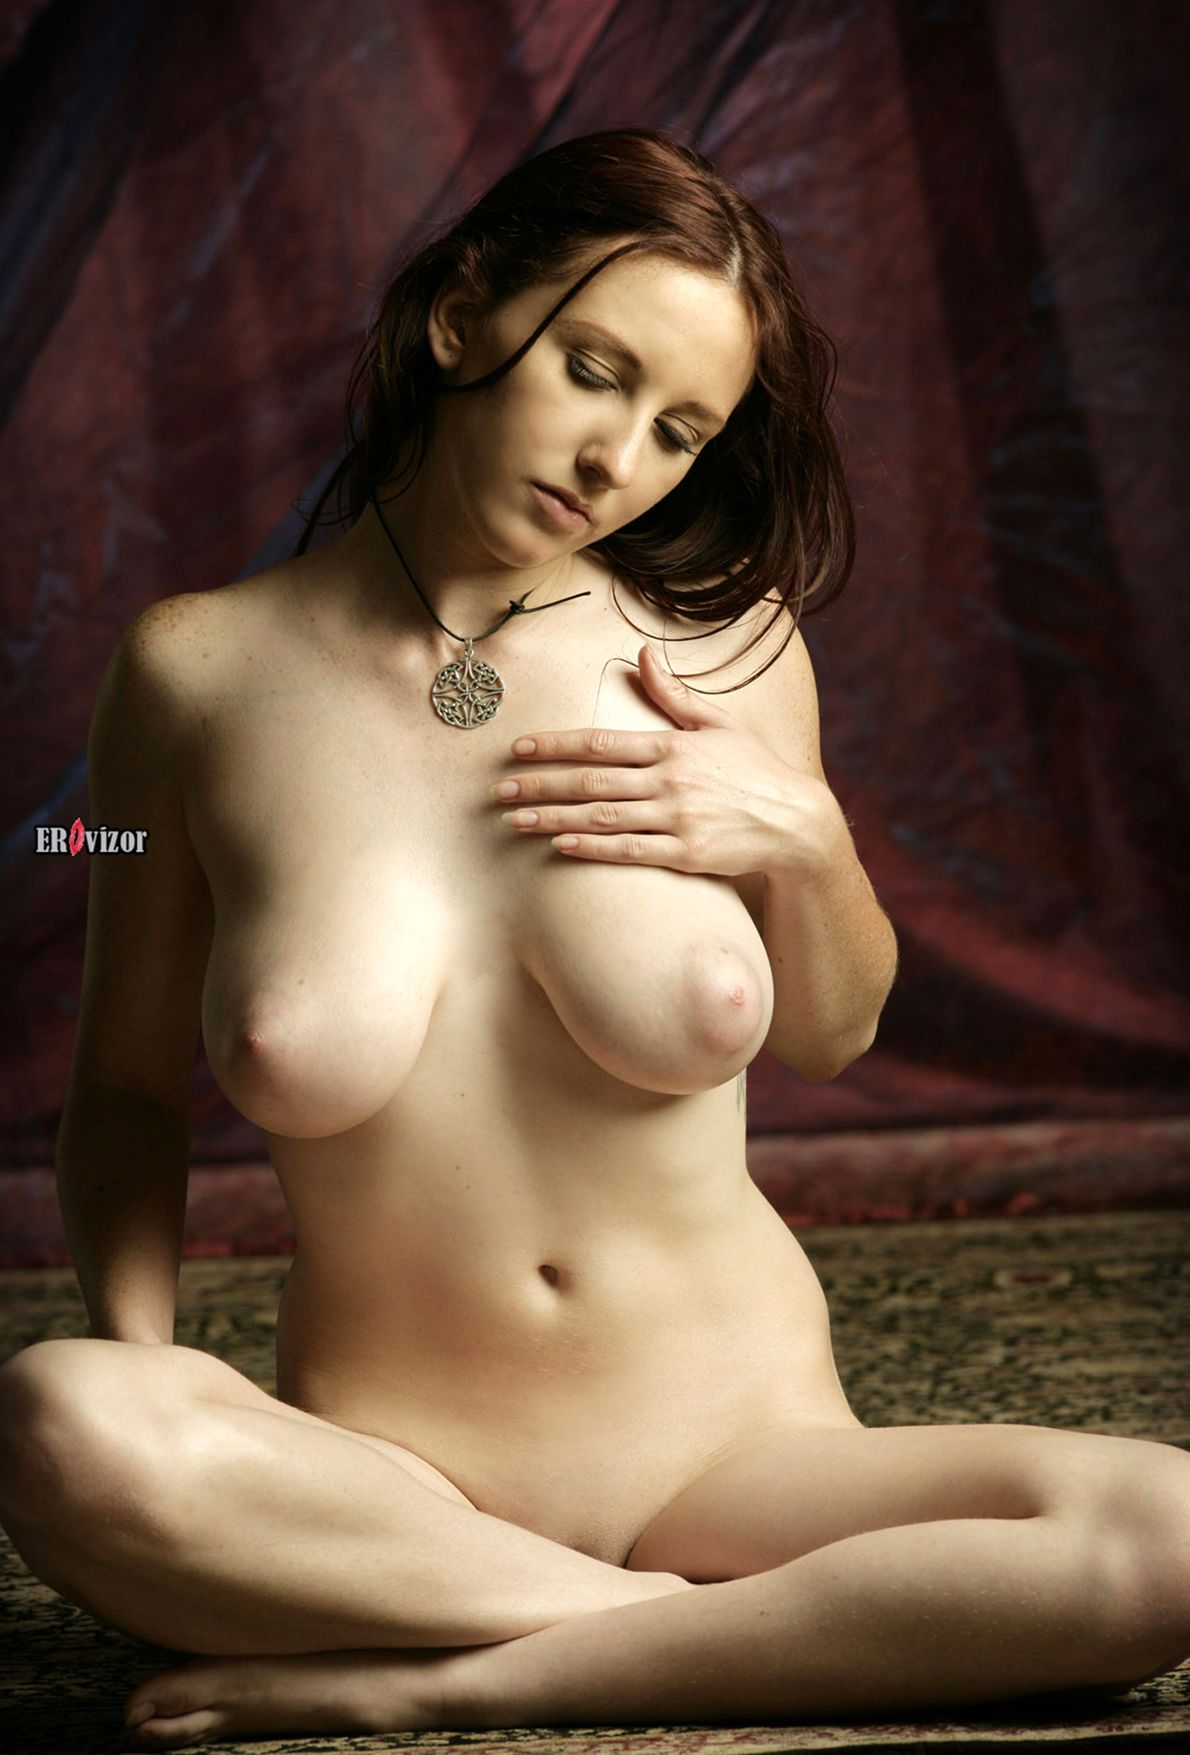 Brunette-Babe-Sarah-Of-Rafeynor-with-Big-Naturals-10